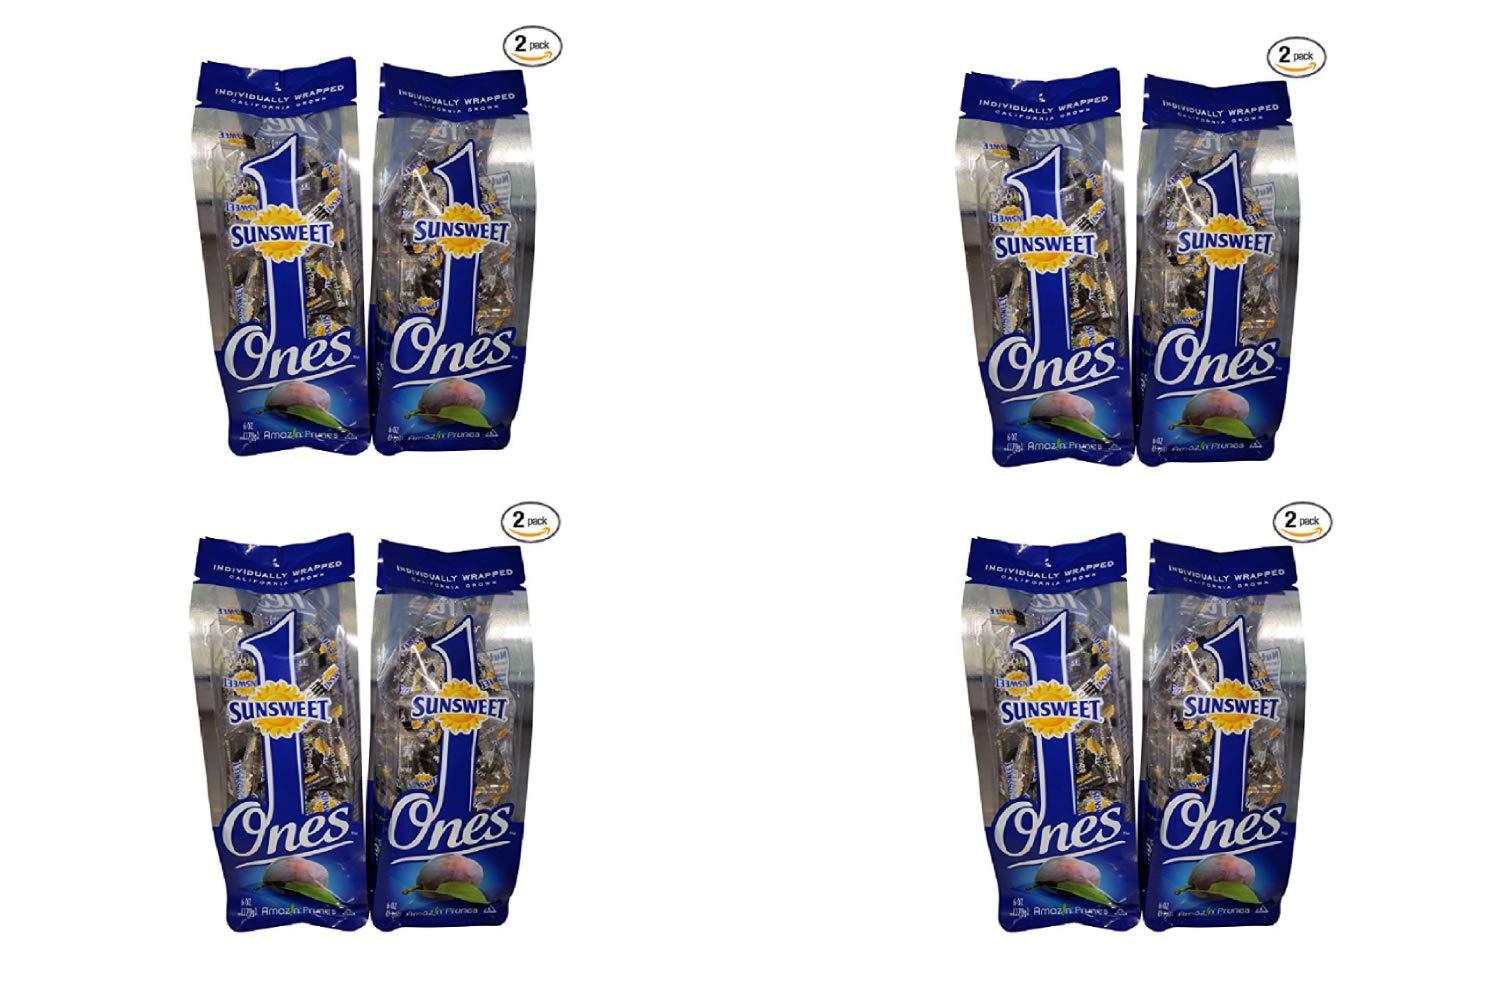 Sunsweet Gold Label Ones Super Select California Individually Wrapped Prunes 6.0 Ounces (Pack of 2)(Packaging May Vary) (4 Pack)